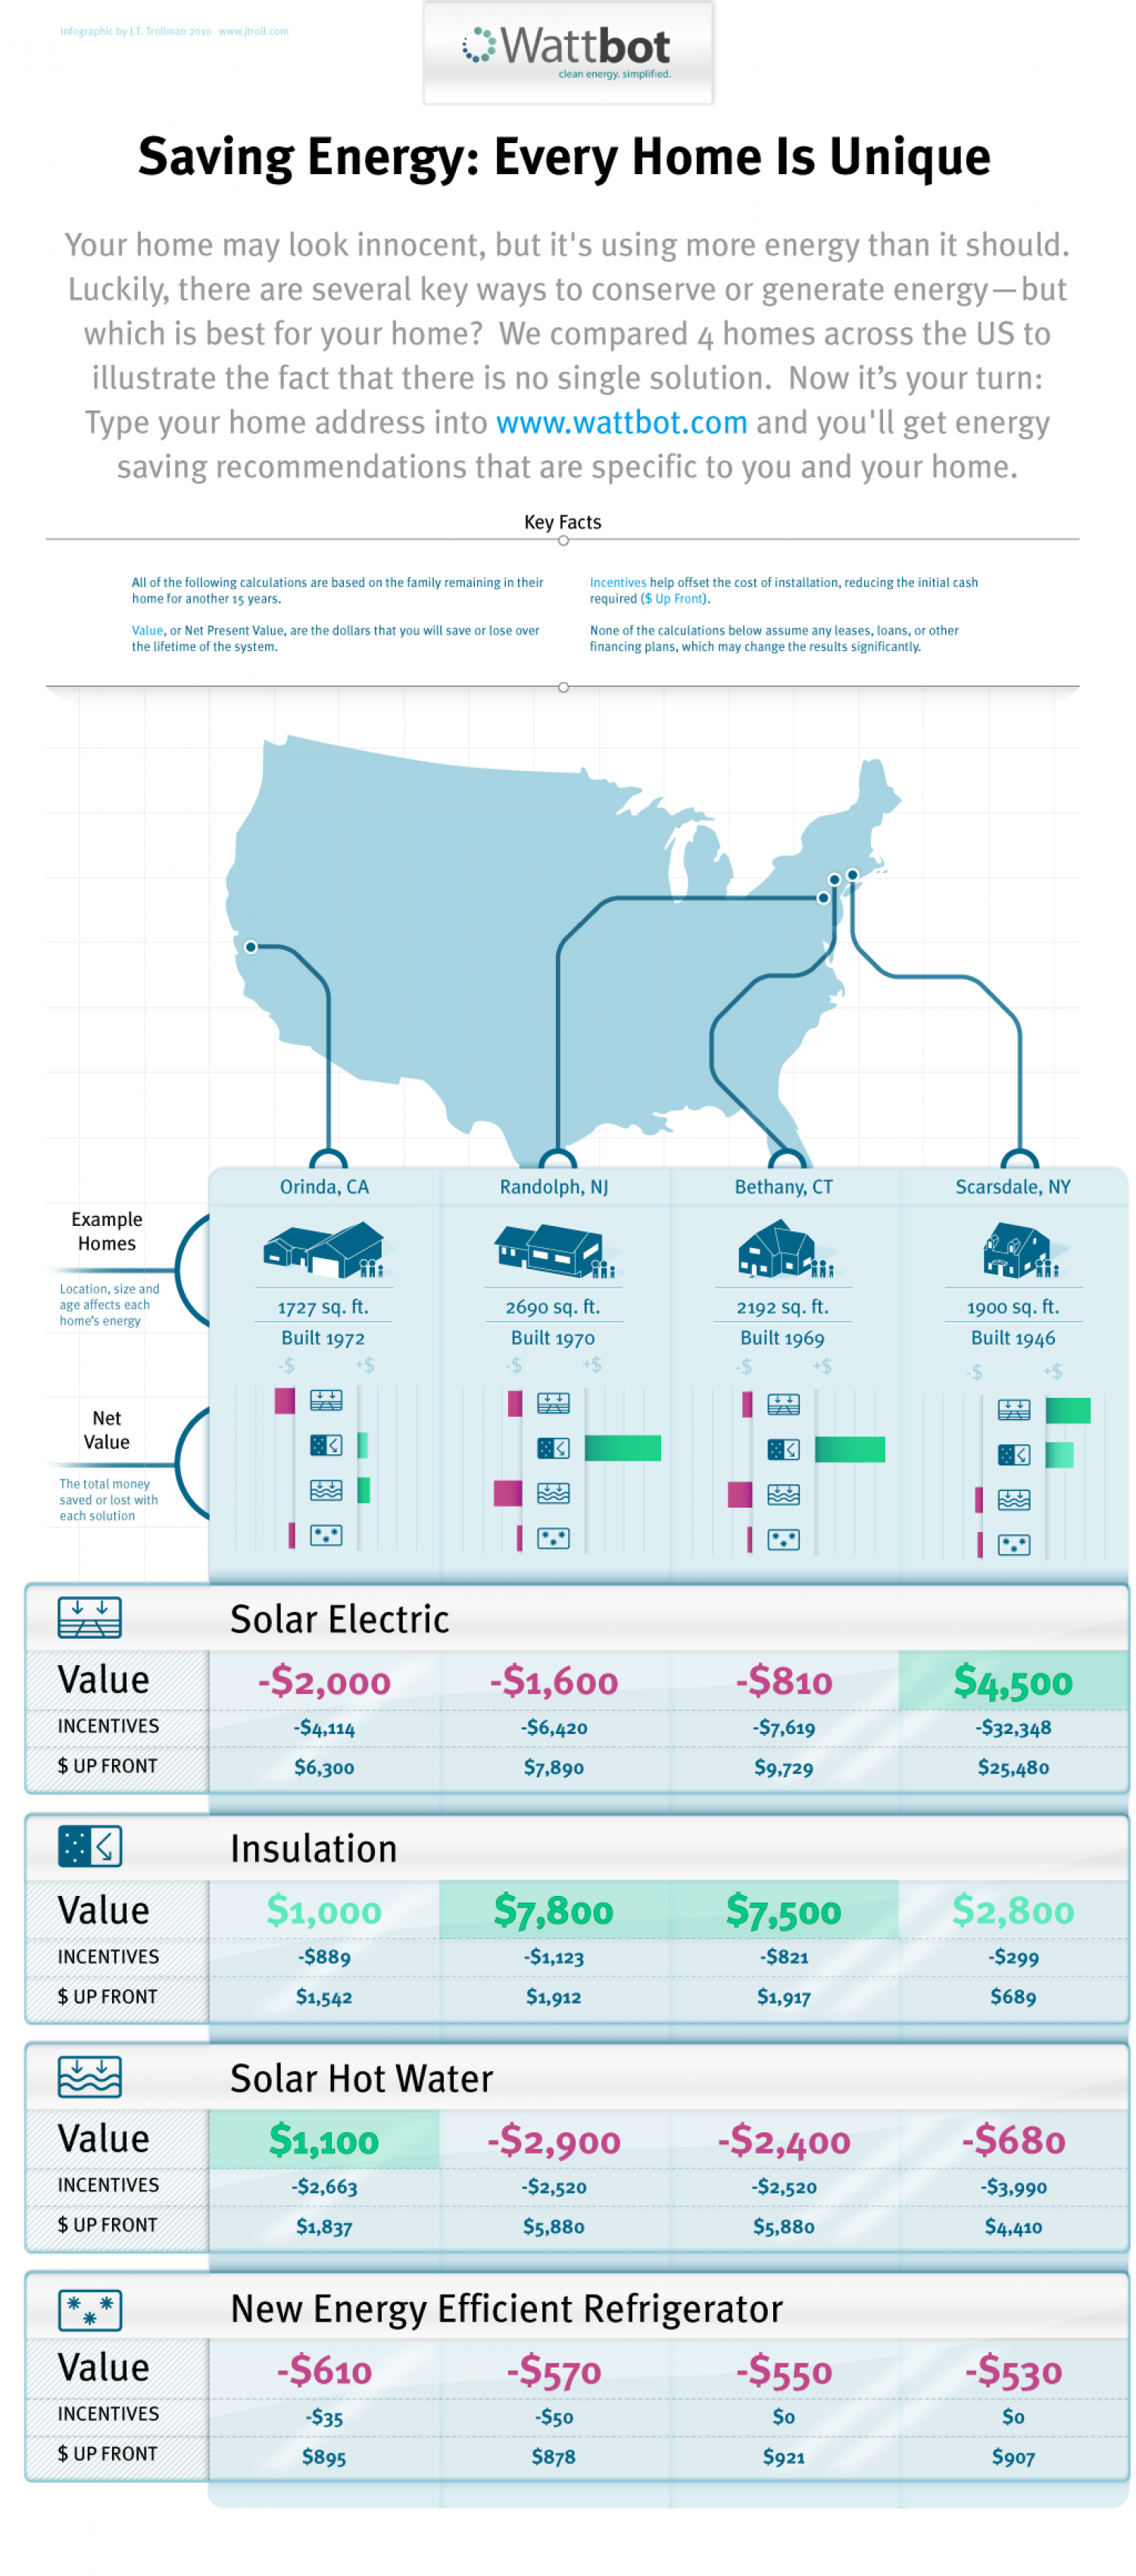 Saving Energy, Every Home is Unique Infographic